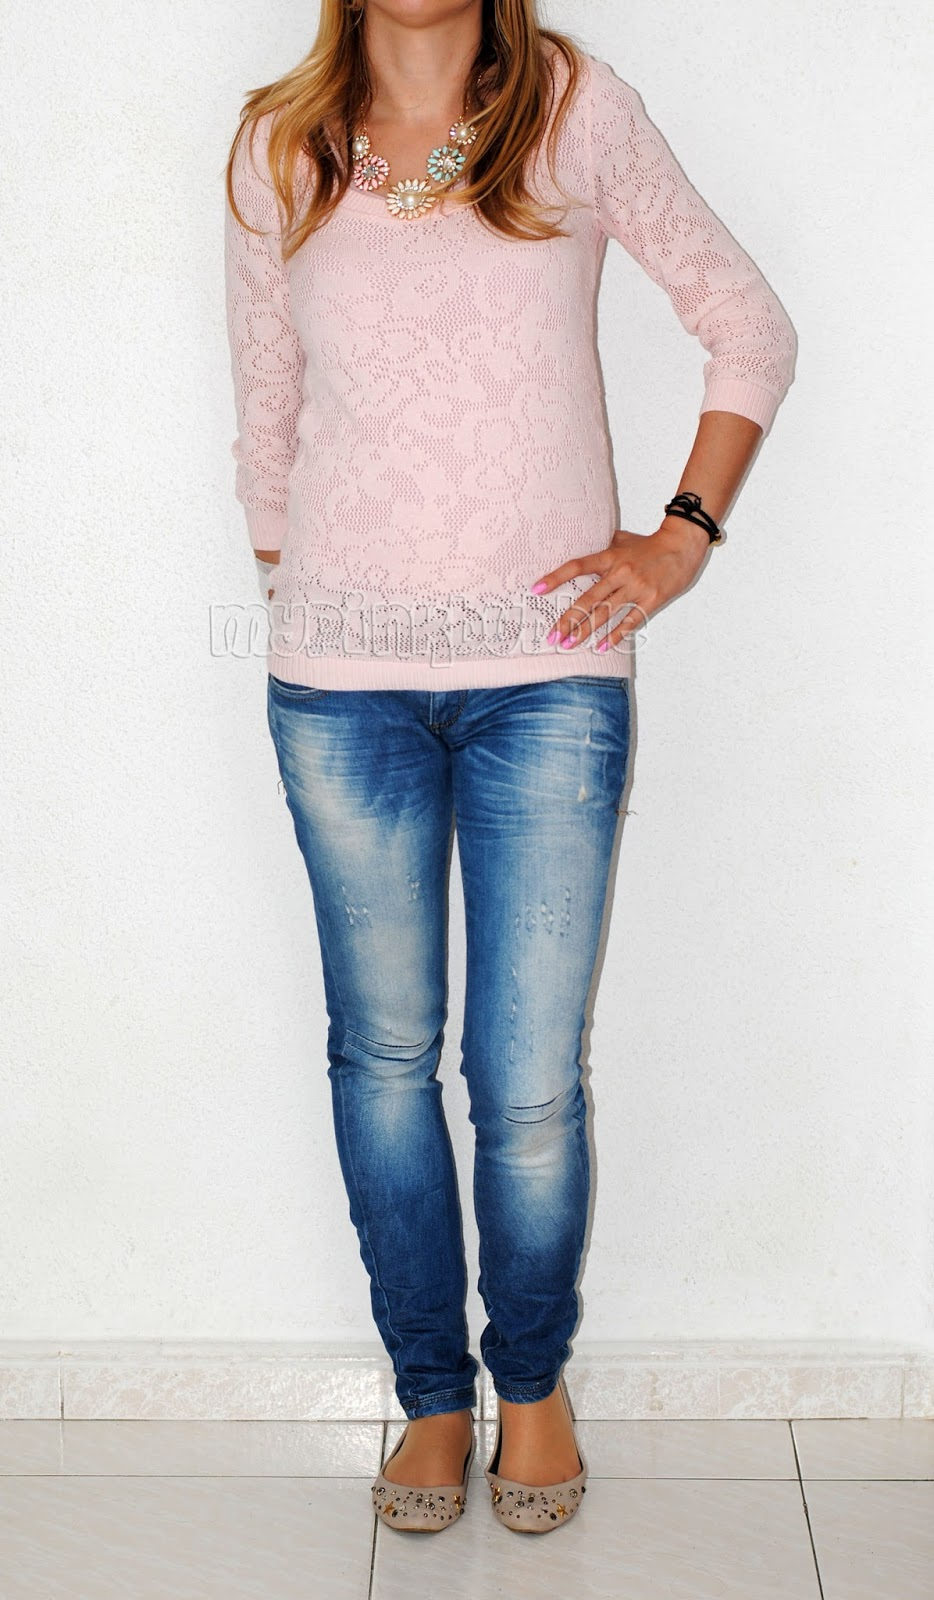 outfit rosa pastel